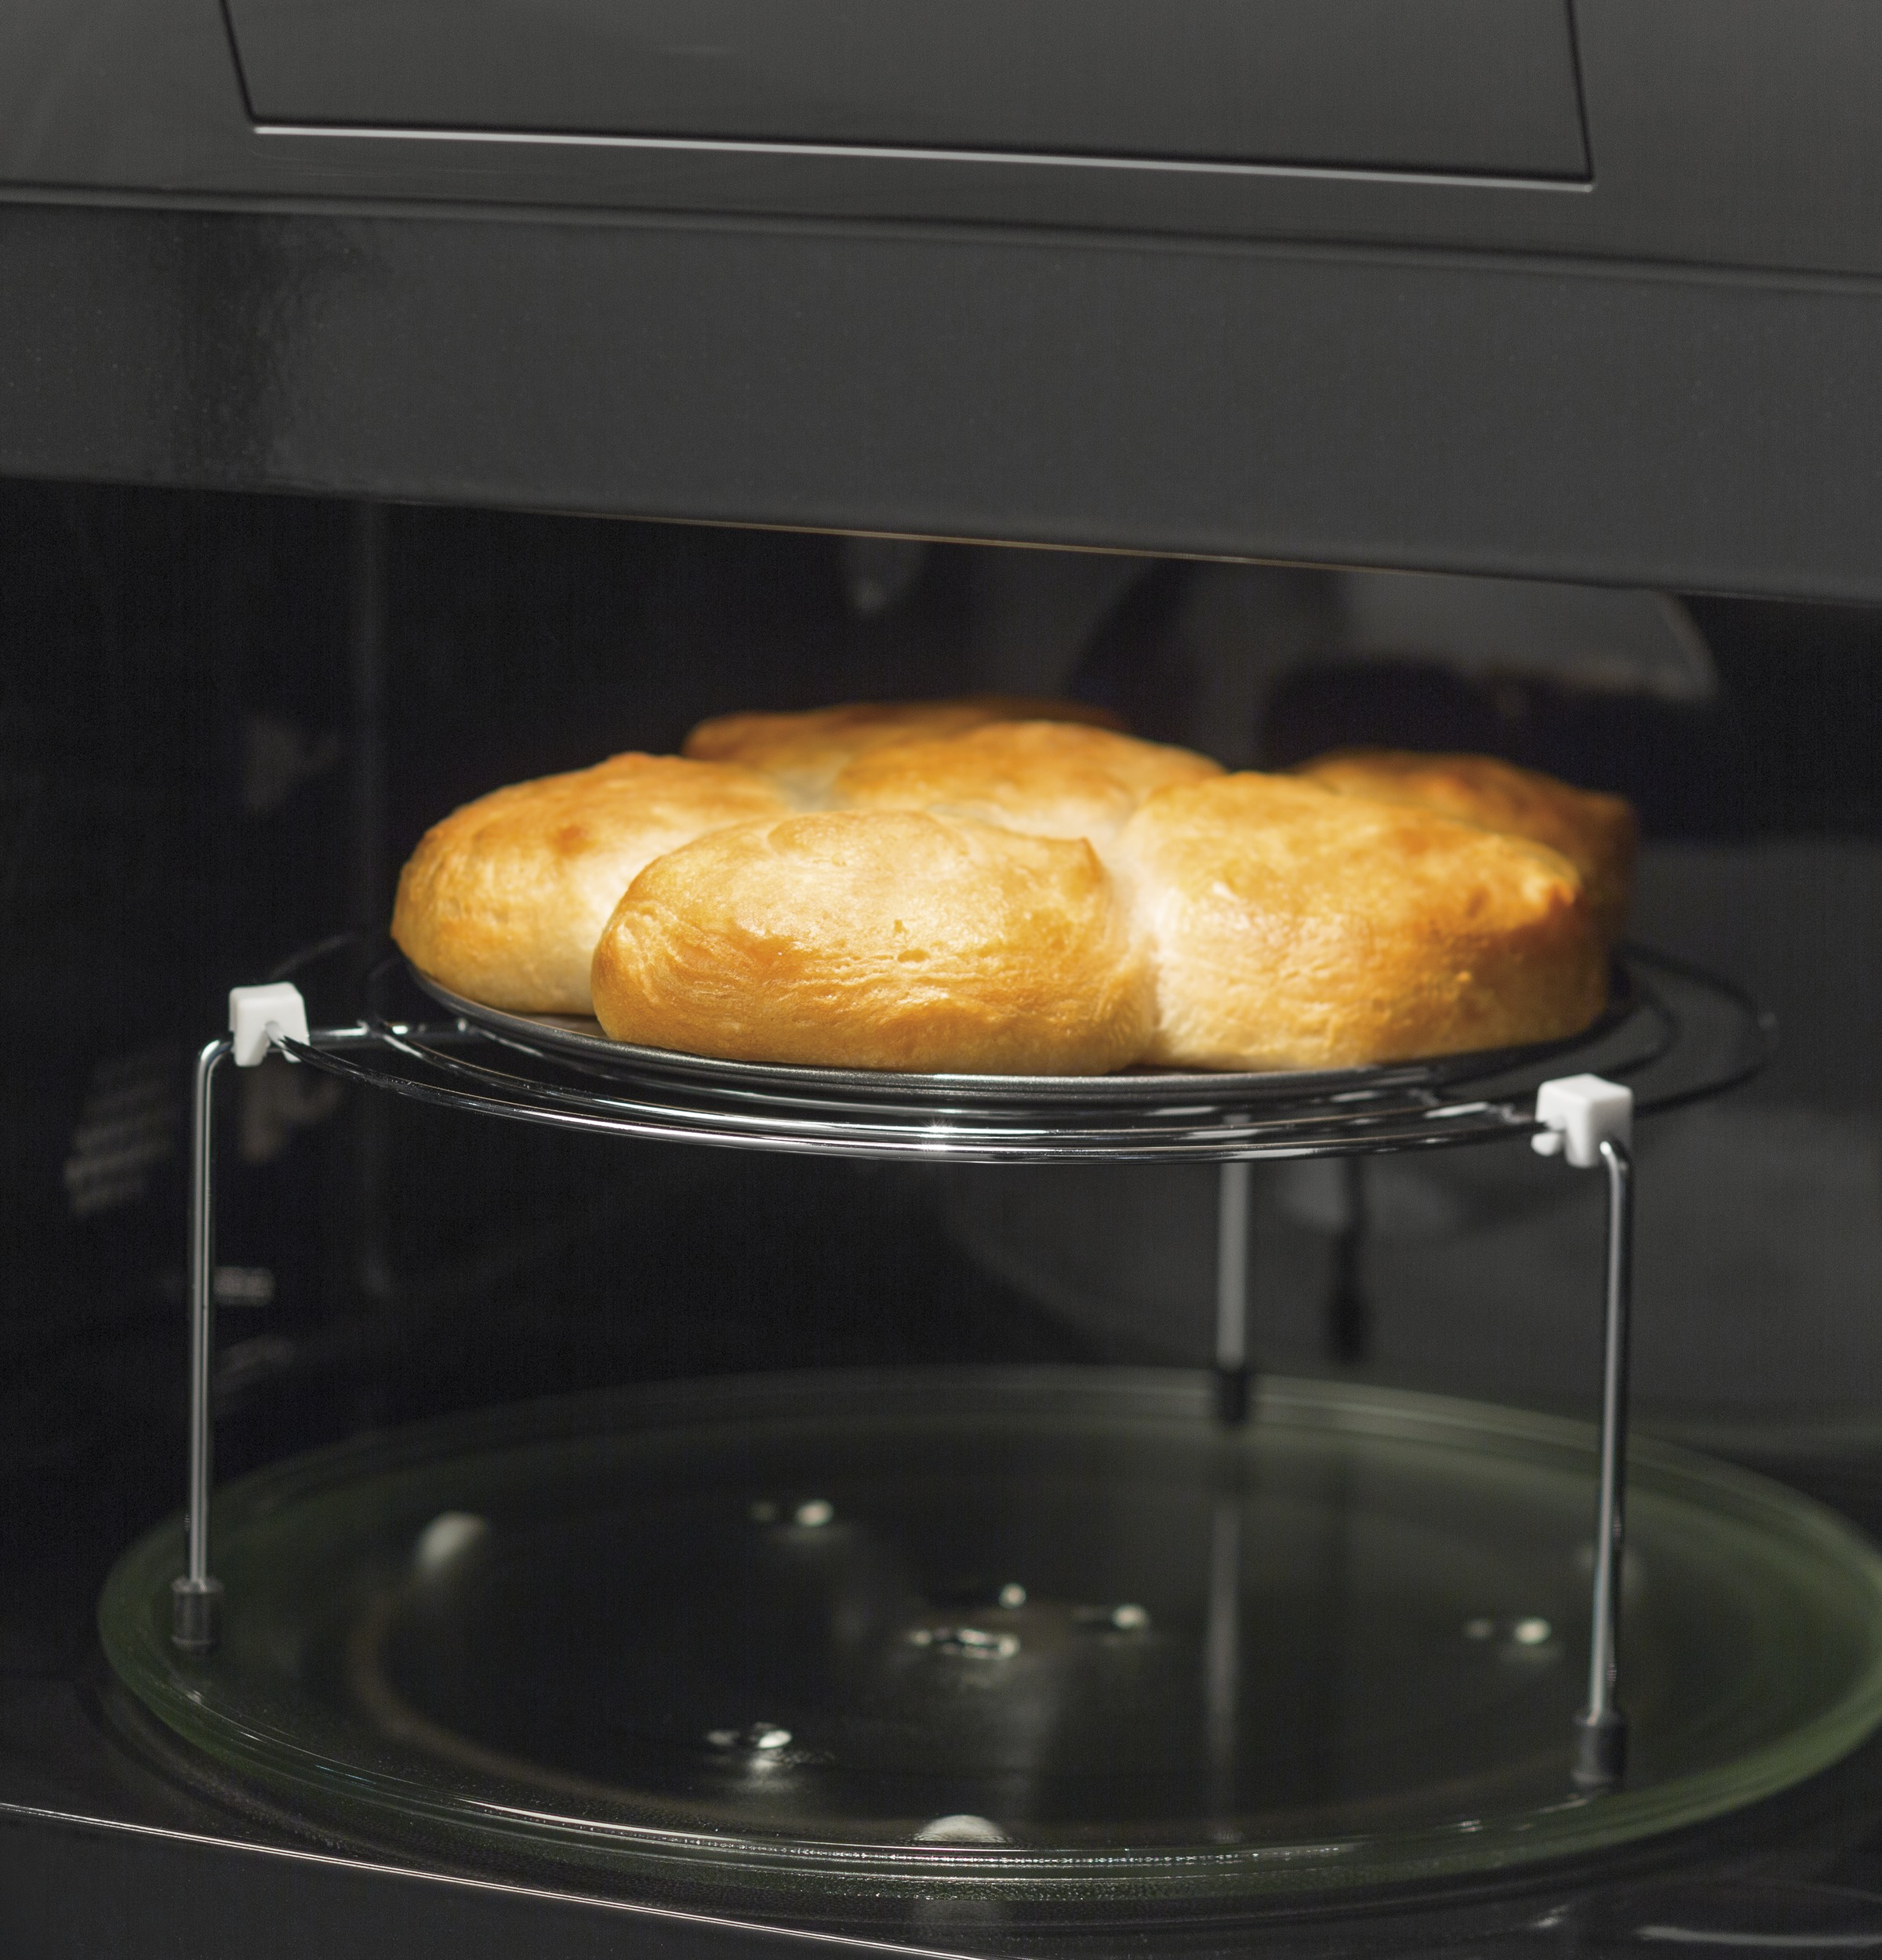 Model: PVM9179SKSS | GE Profile GE Profile™ Series 1.7 Cu. Ft. Convection Over-the-Range Microwave Oven